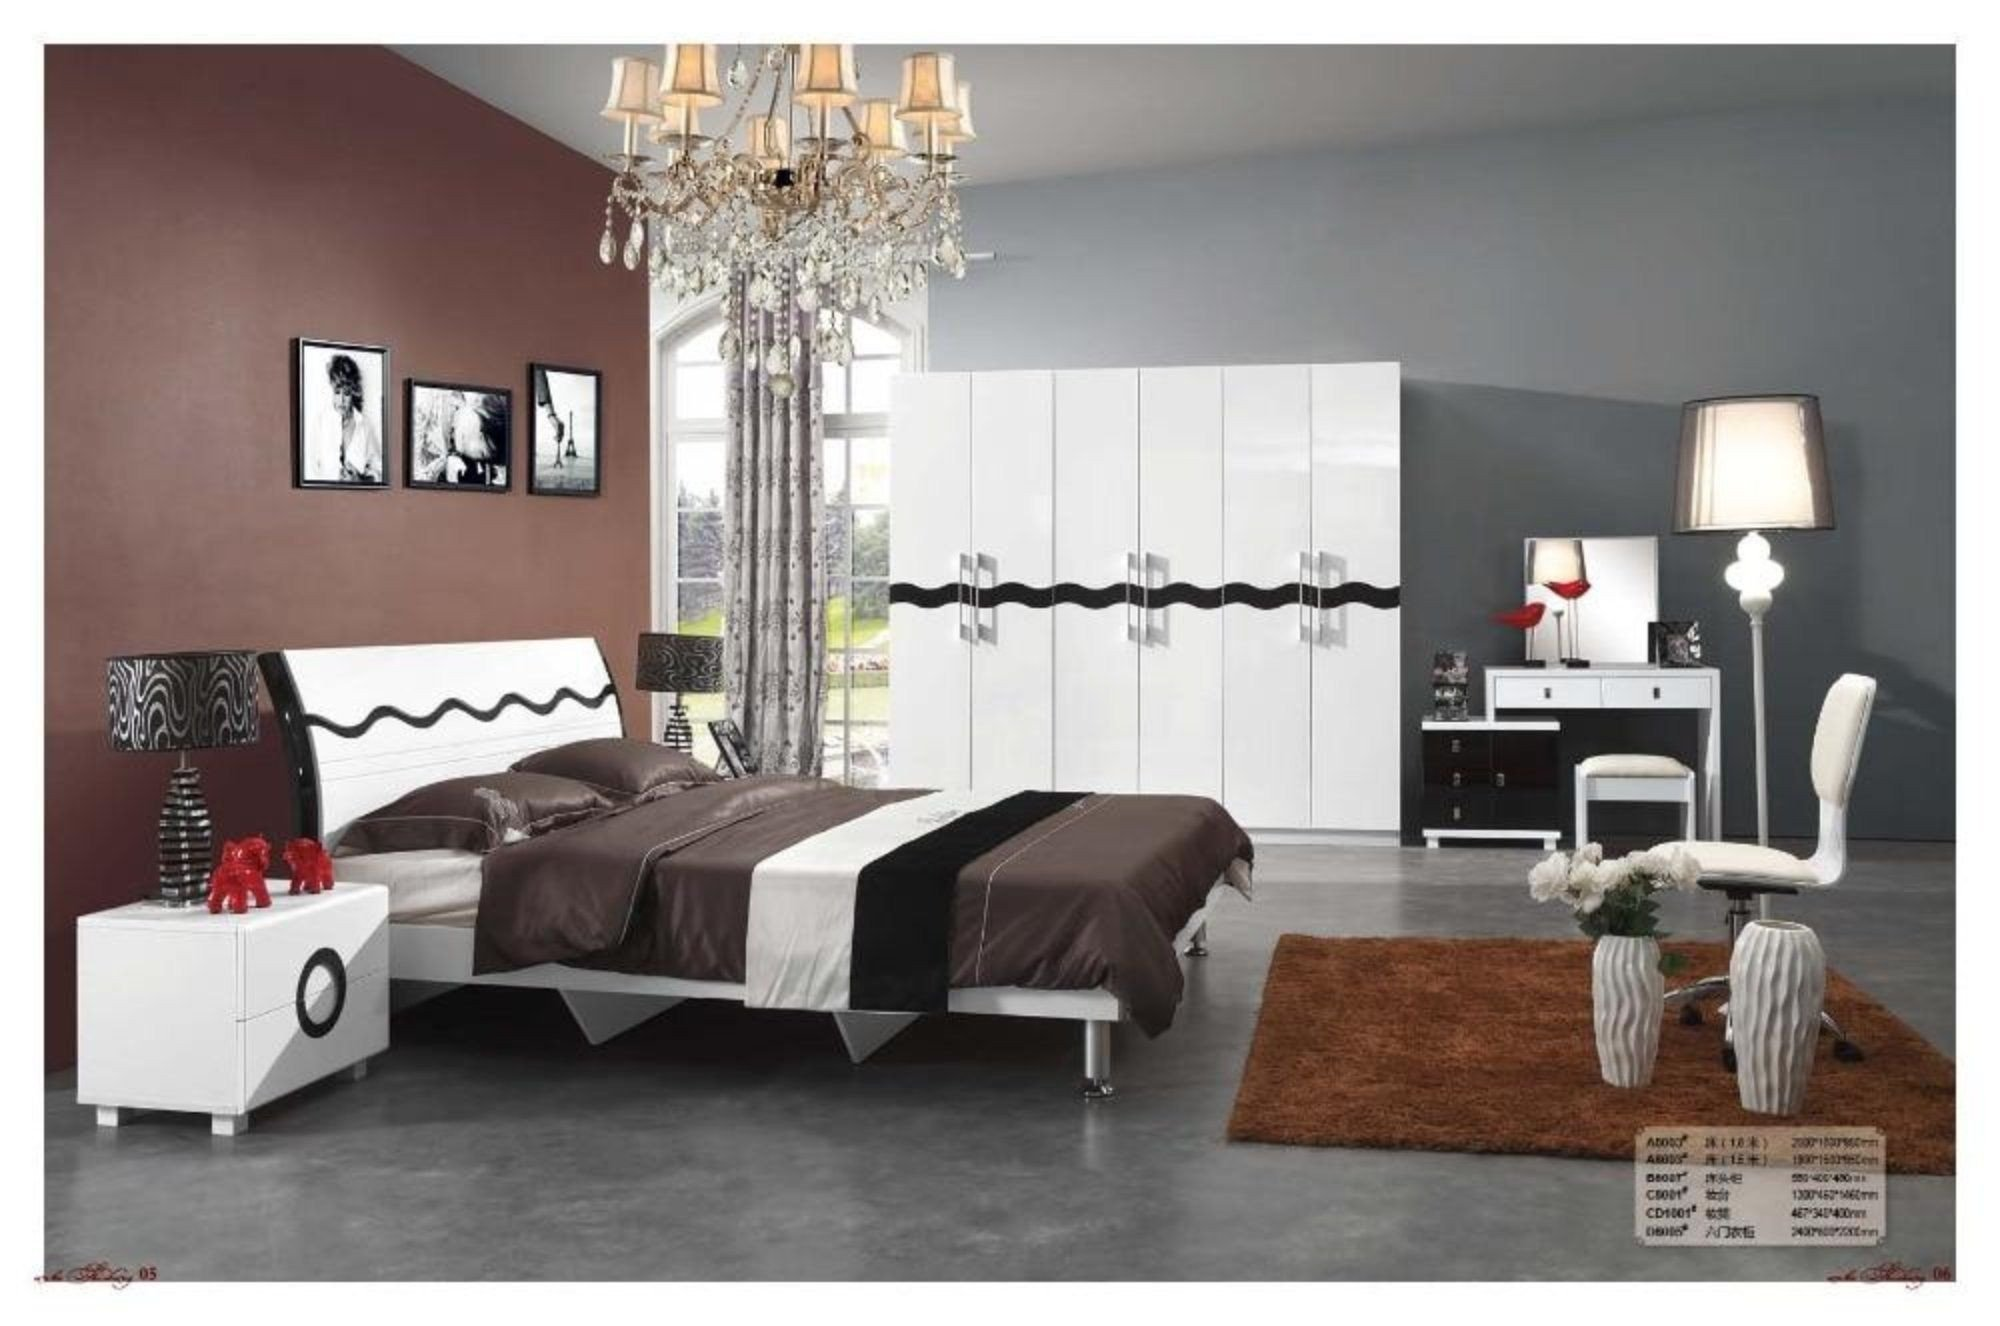 Cheap Modern Bedroom Set Awesome Modern Set Wooden Bed Night Stand Dresser In 2019